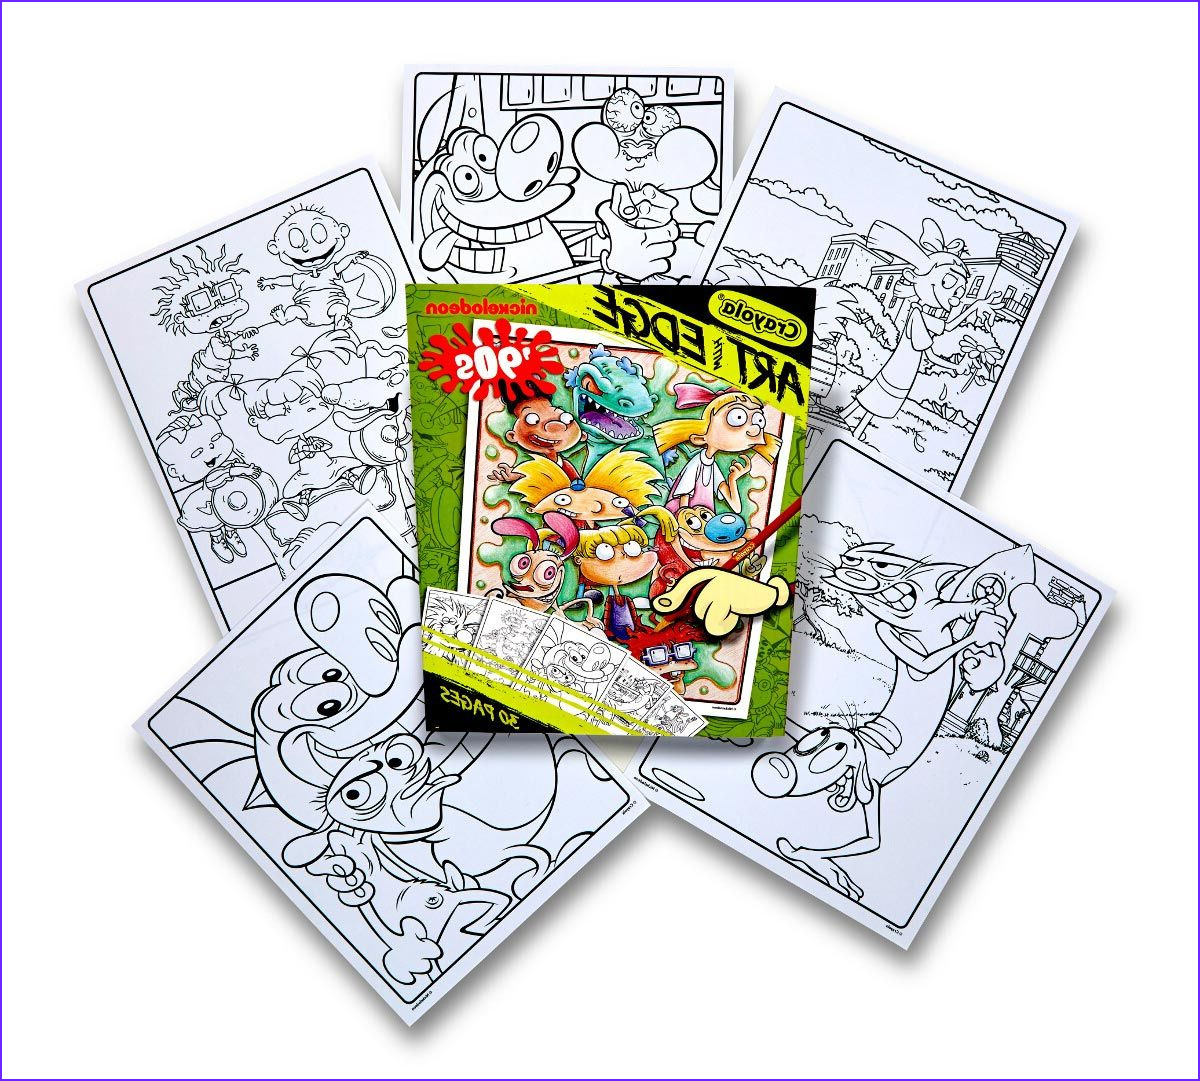 Nickelodeon Coloring Books Beautiful Photos Crayola Art with Edge Nickelodeon Classics 30 Pages Art